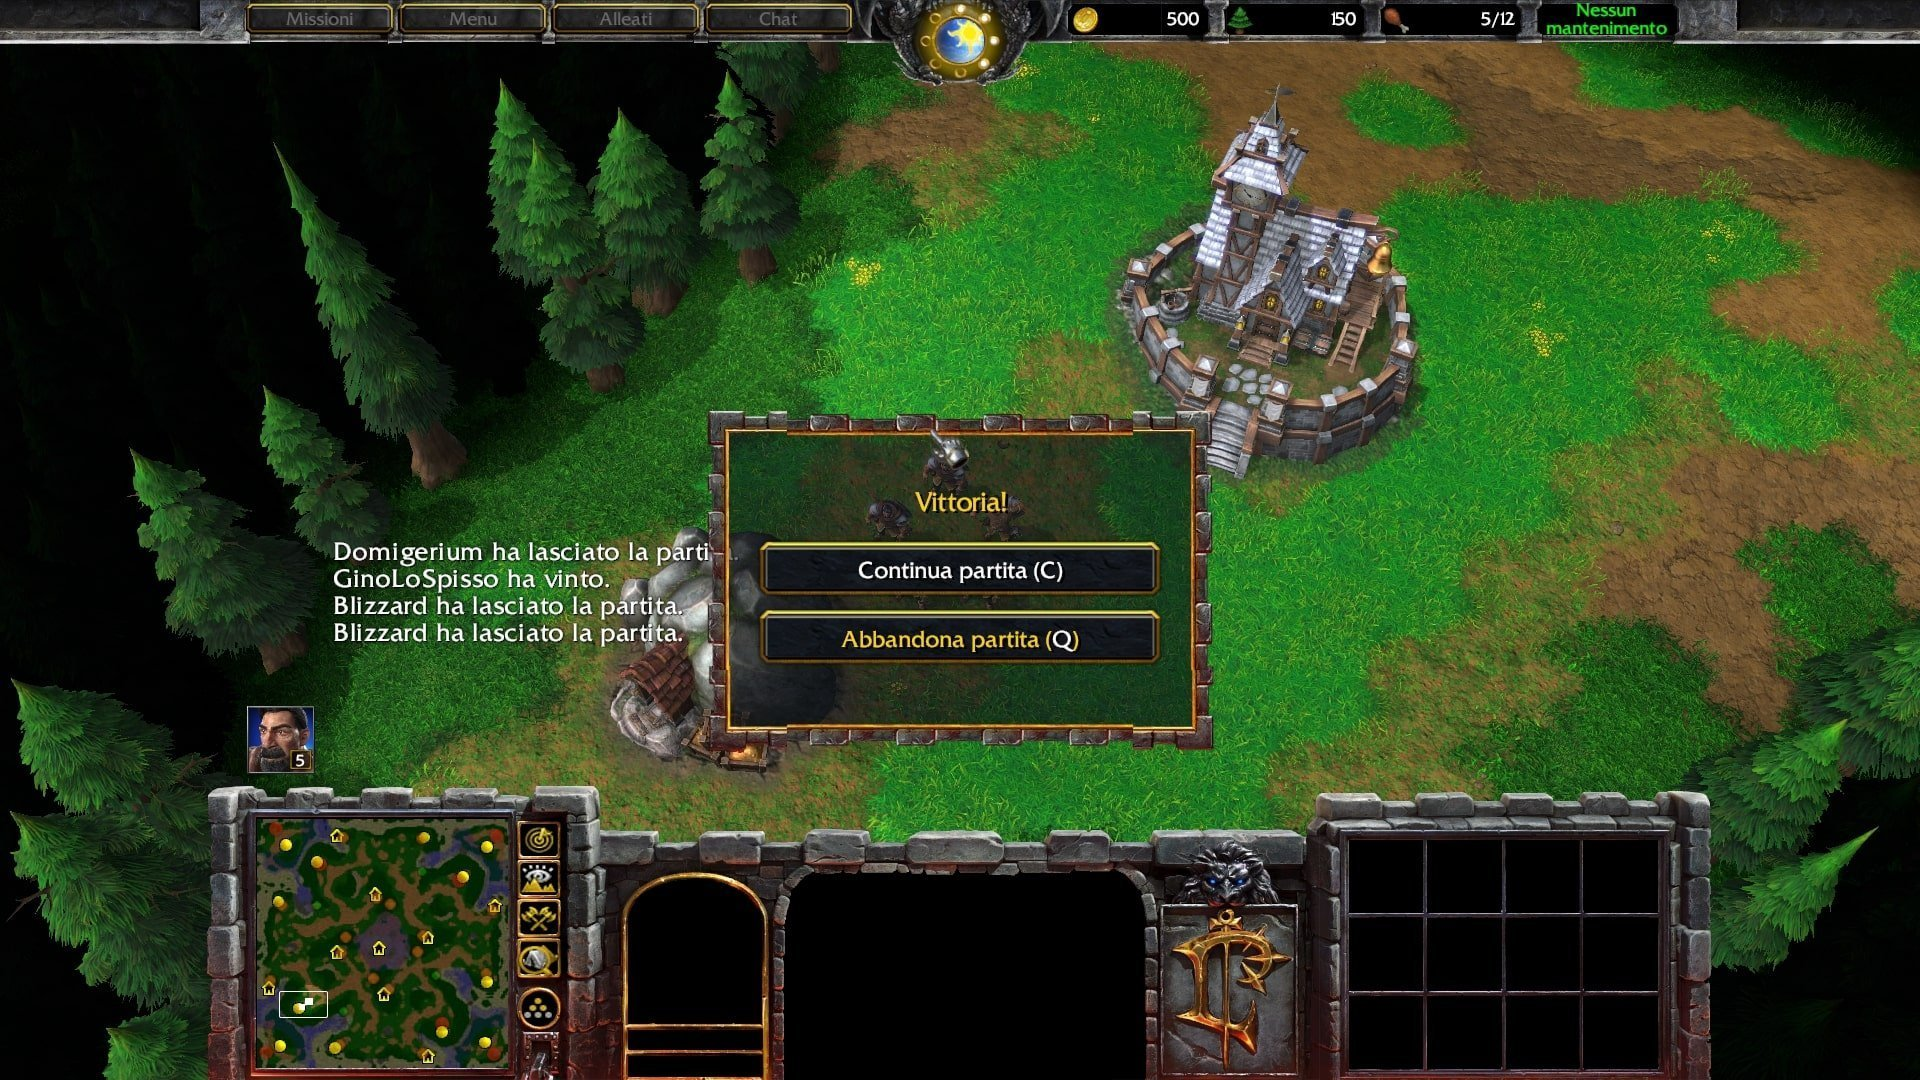 Warcraft III: Reforged Warcraft 3 Reforged